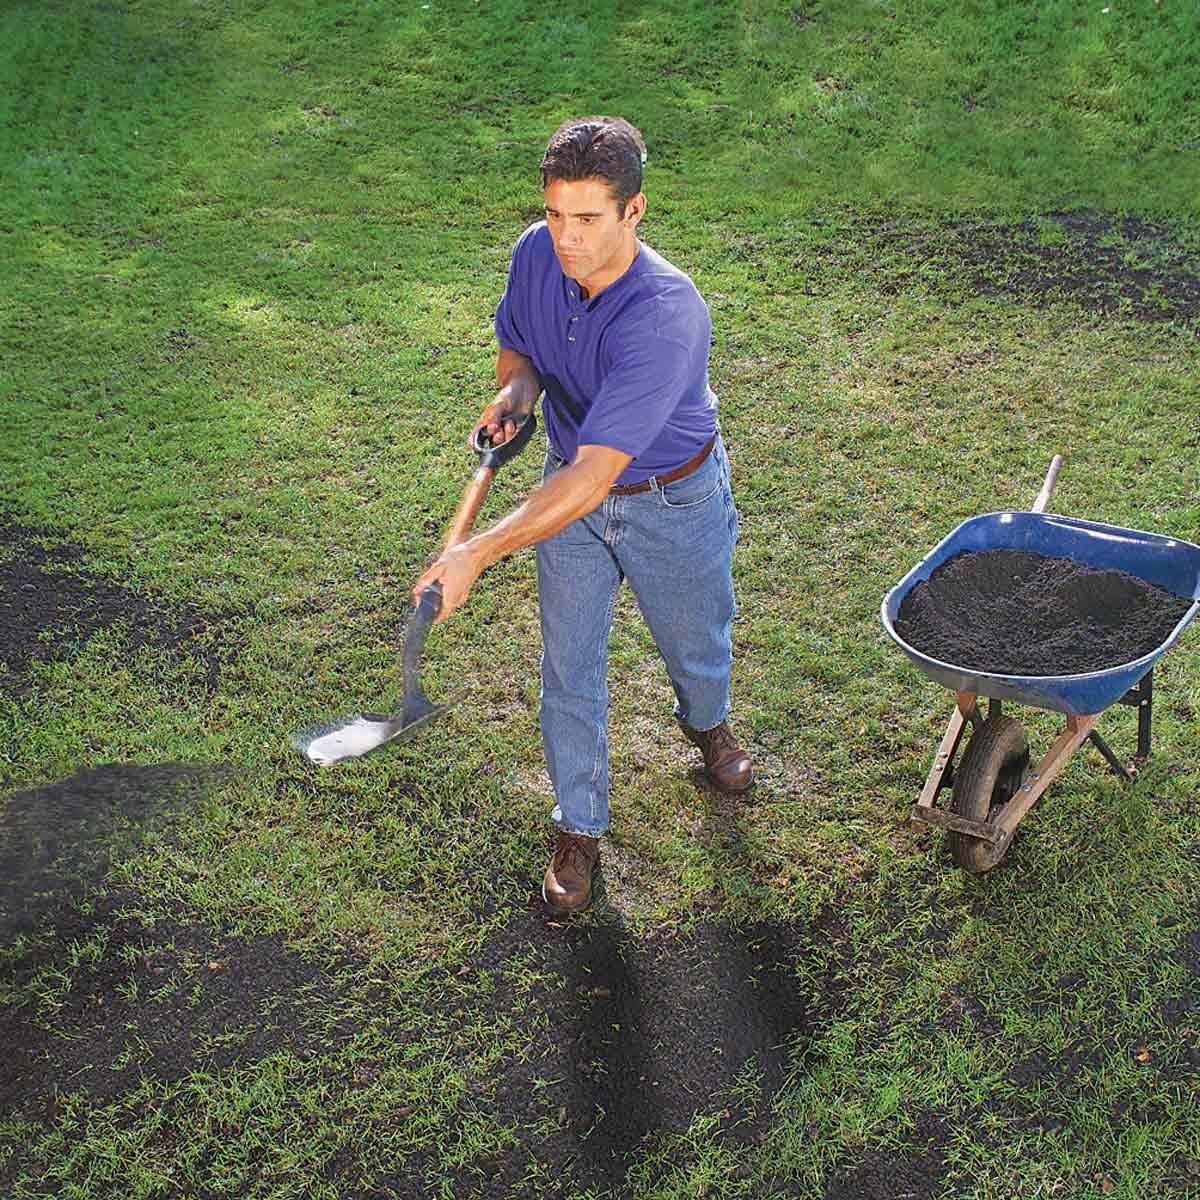 18 Things You Should Never Do To Your Lawn | The Family Handyman